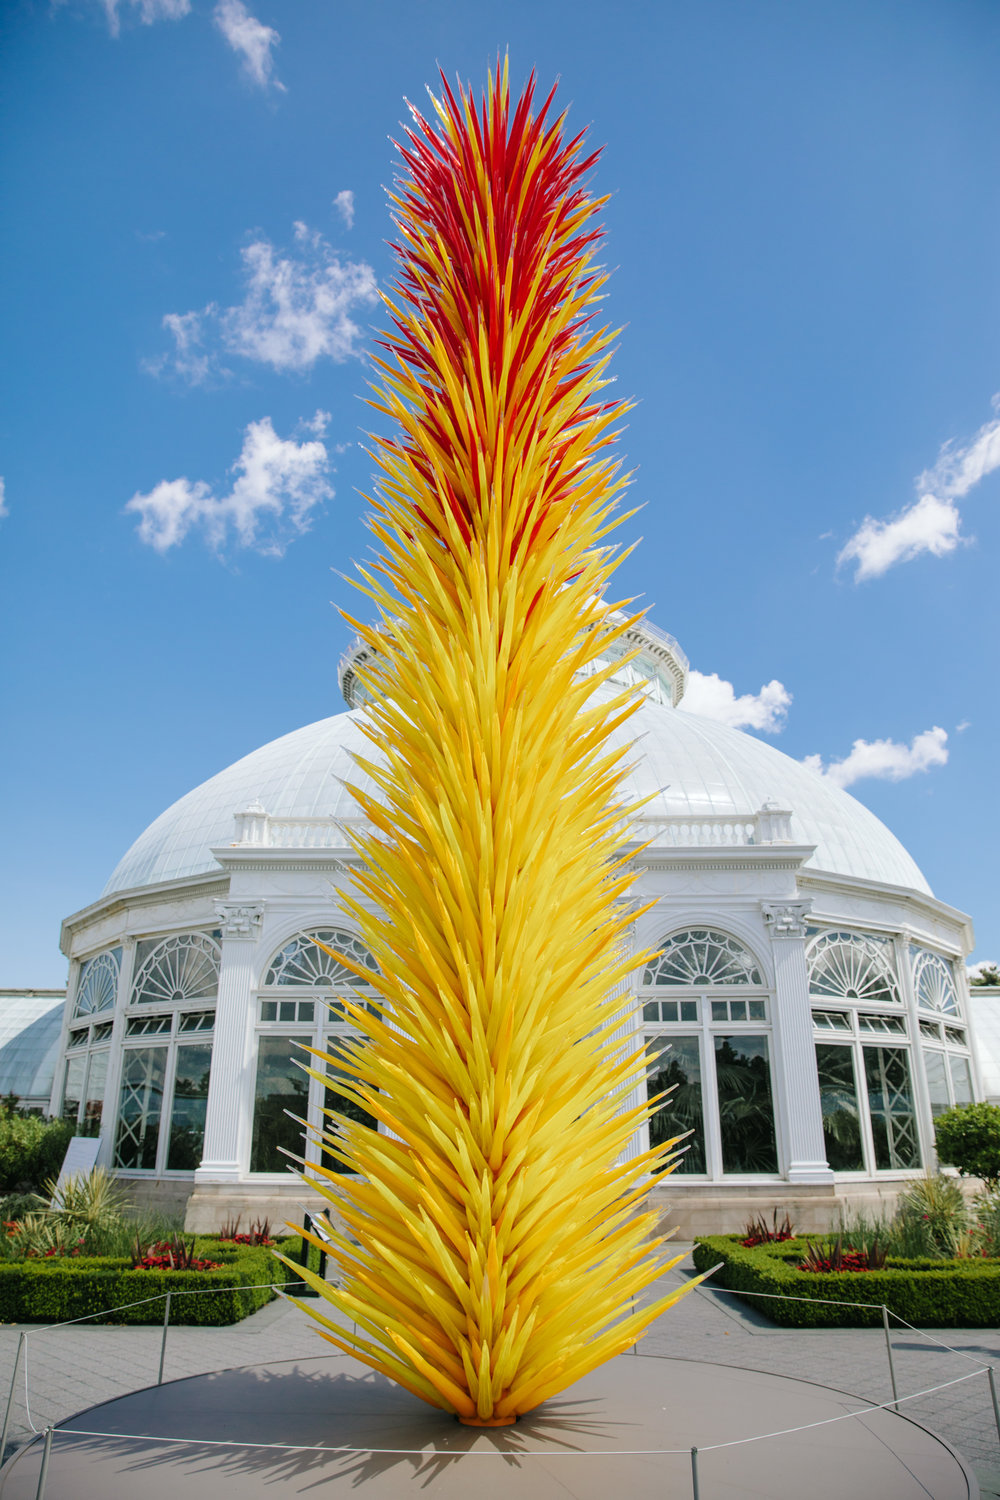 CHIHULY NY BOTANICAL GARDEN_BRIAN SAMUELS_AUGUST 2017-7224.jpg